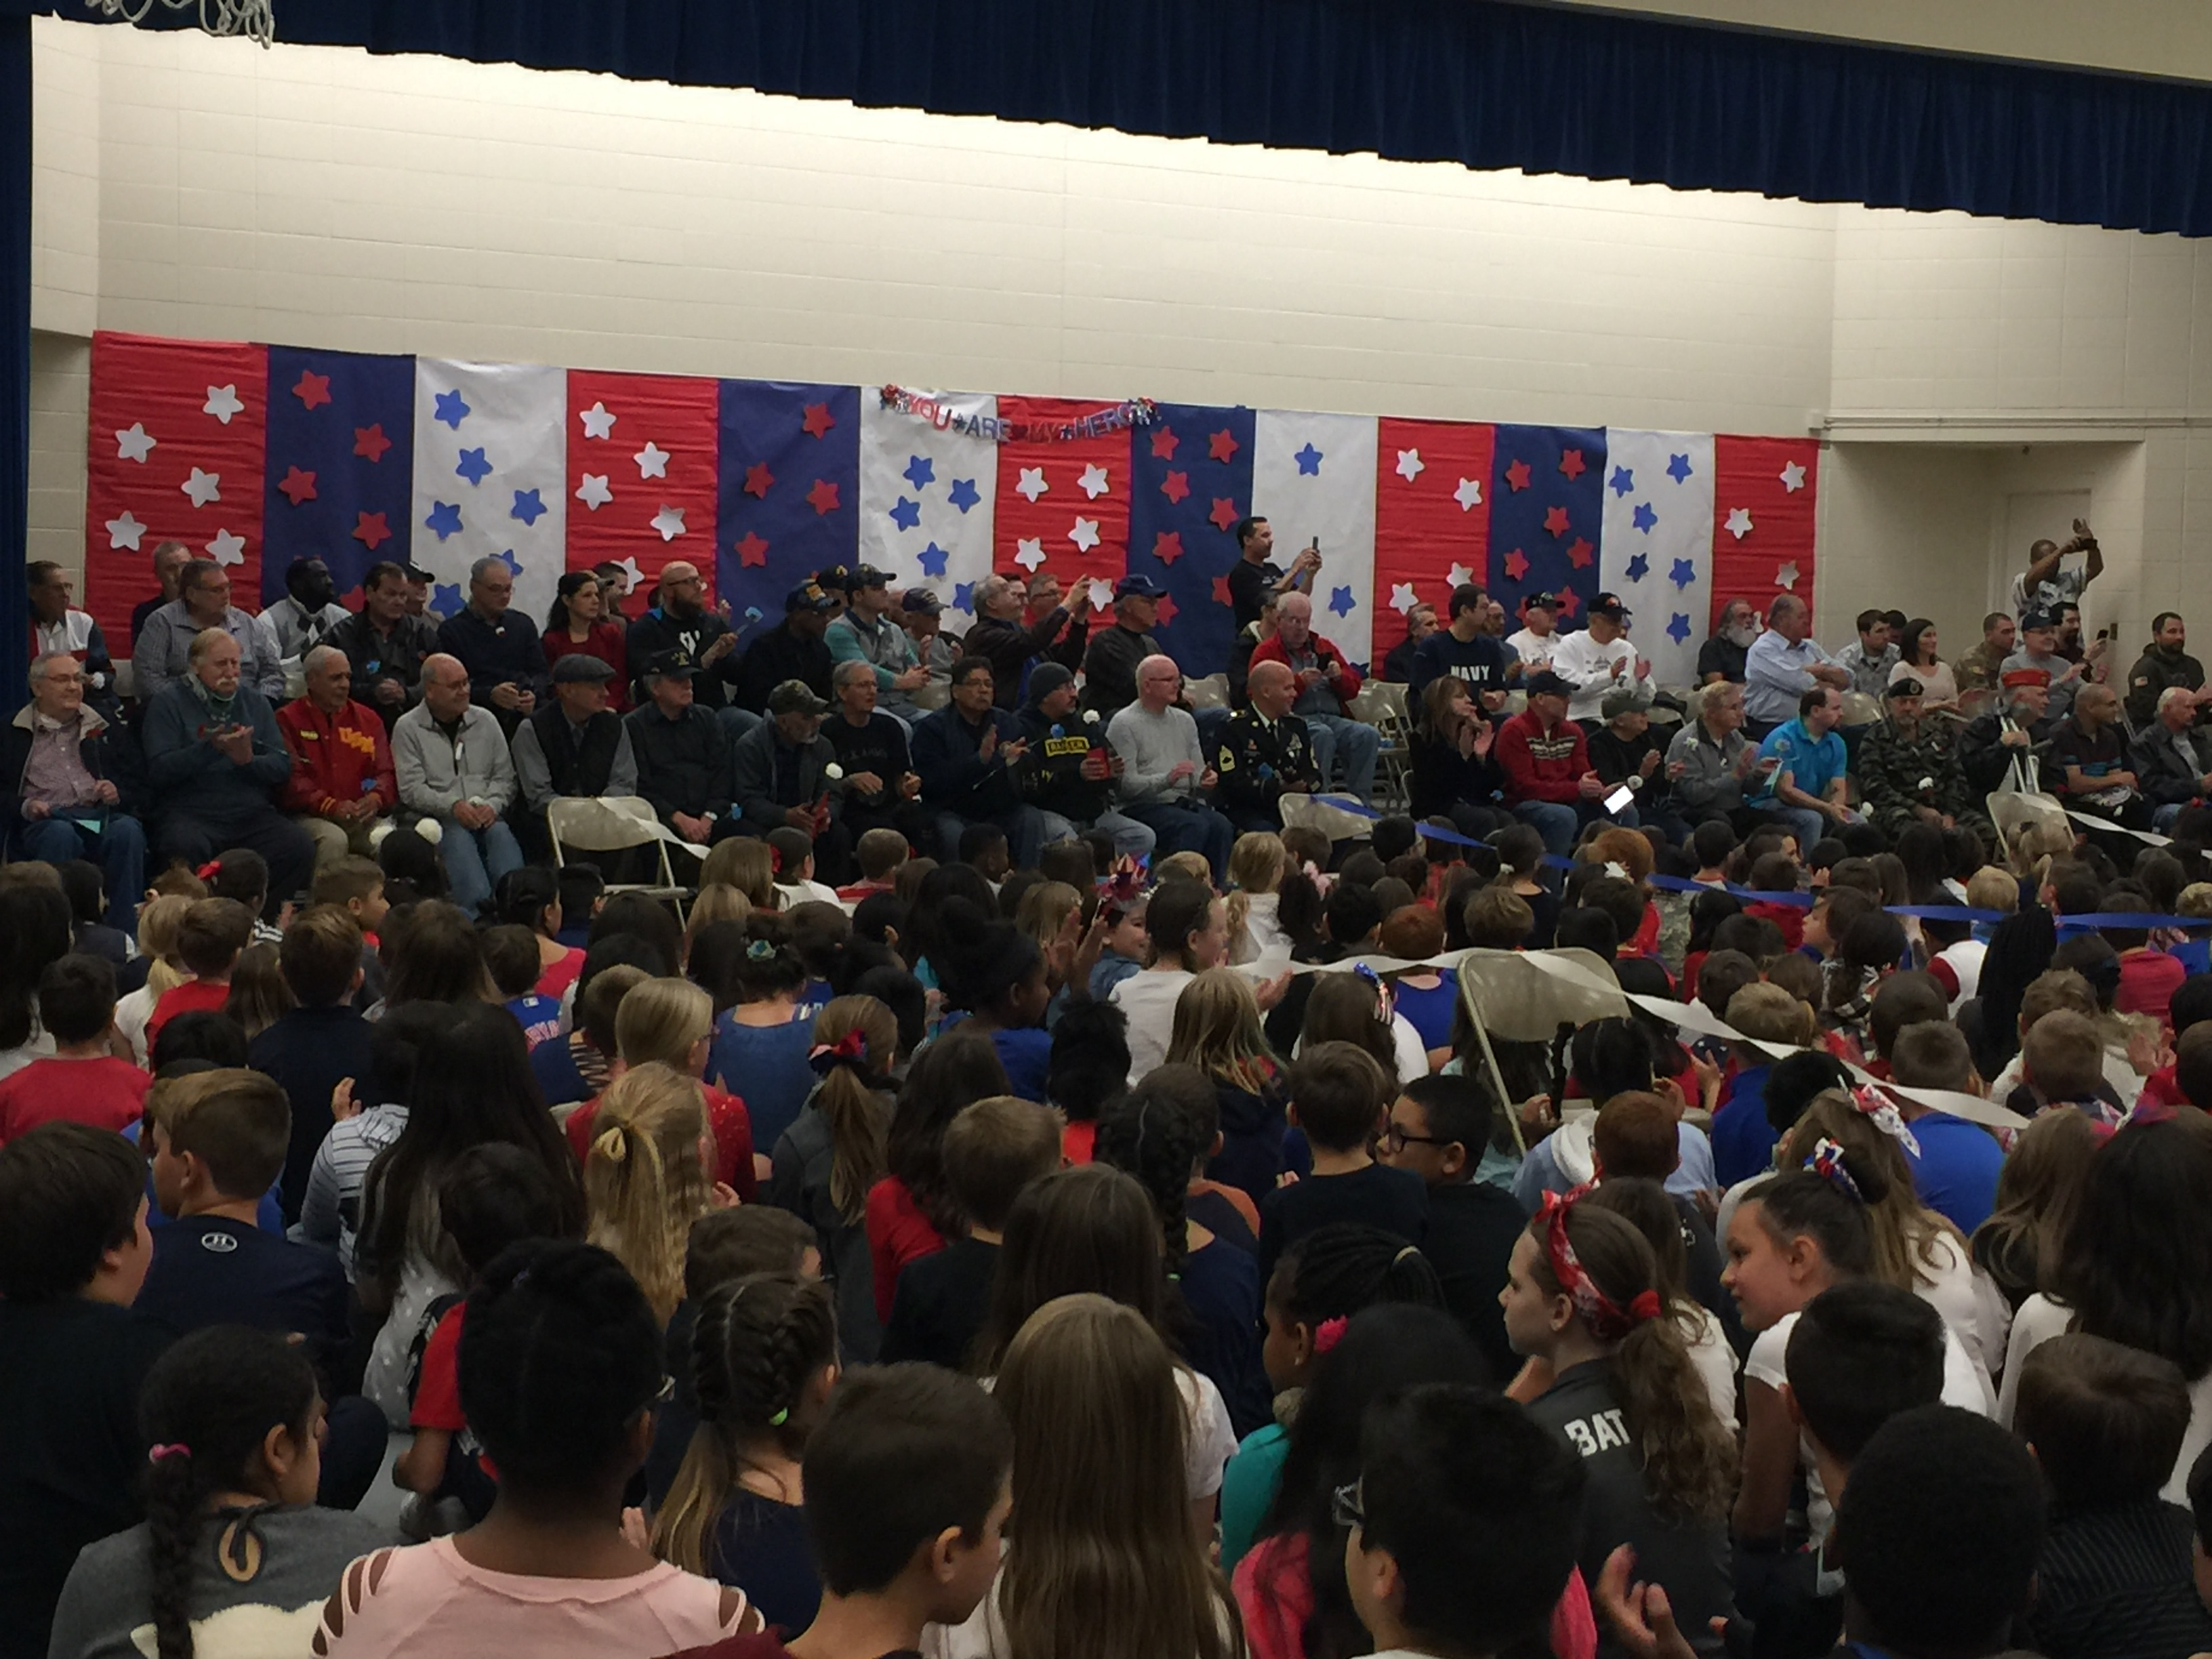 Watson Elementary celebrated Veterans Day on November 8. Approximately 74 veterans attended and were honored.